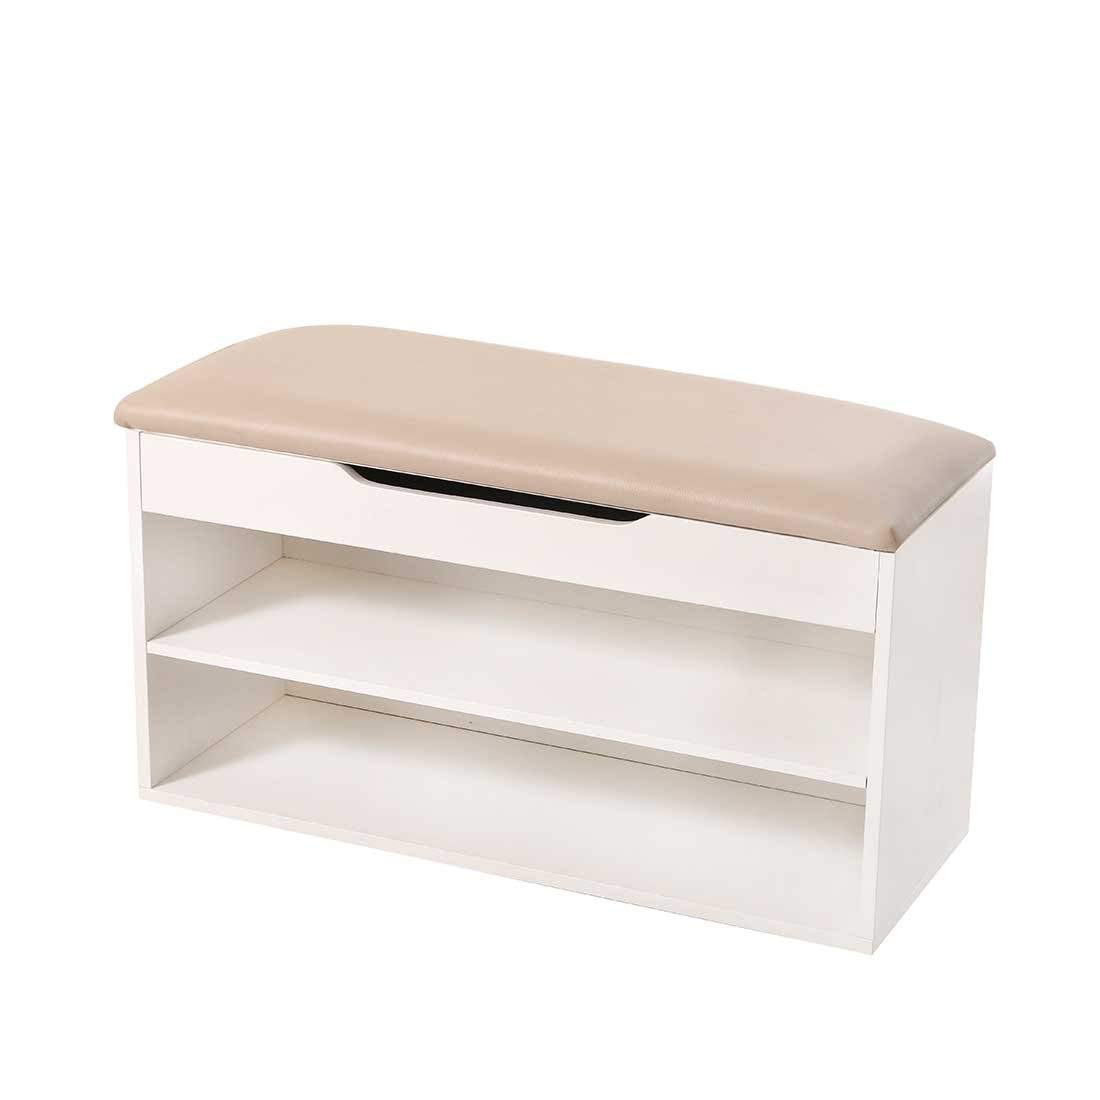 oneisall Wooden Shoe Cabinet with Seat Cushion, Hallway Storage Bench with Lift Up Lid, 87X52X36CM (White) guidecraft classic white storage bench